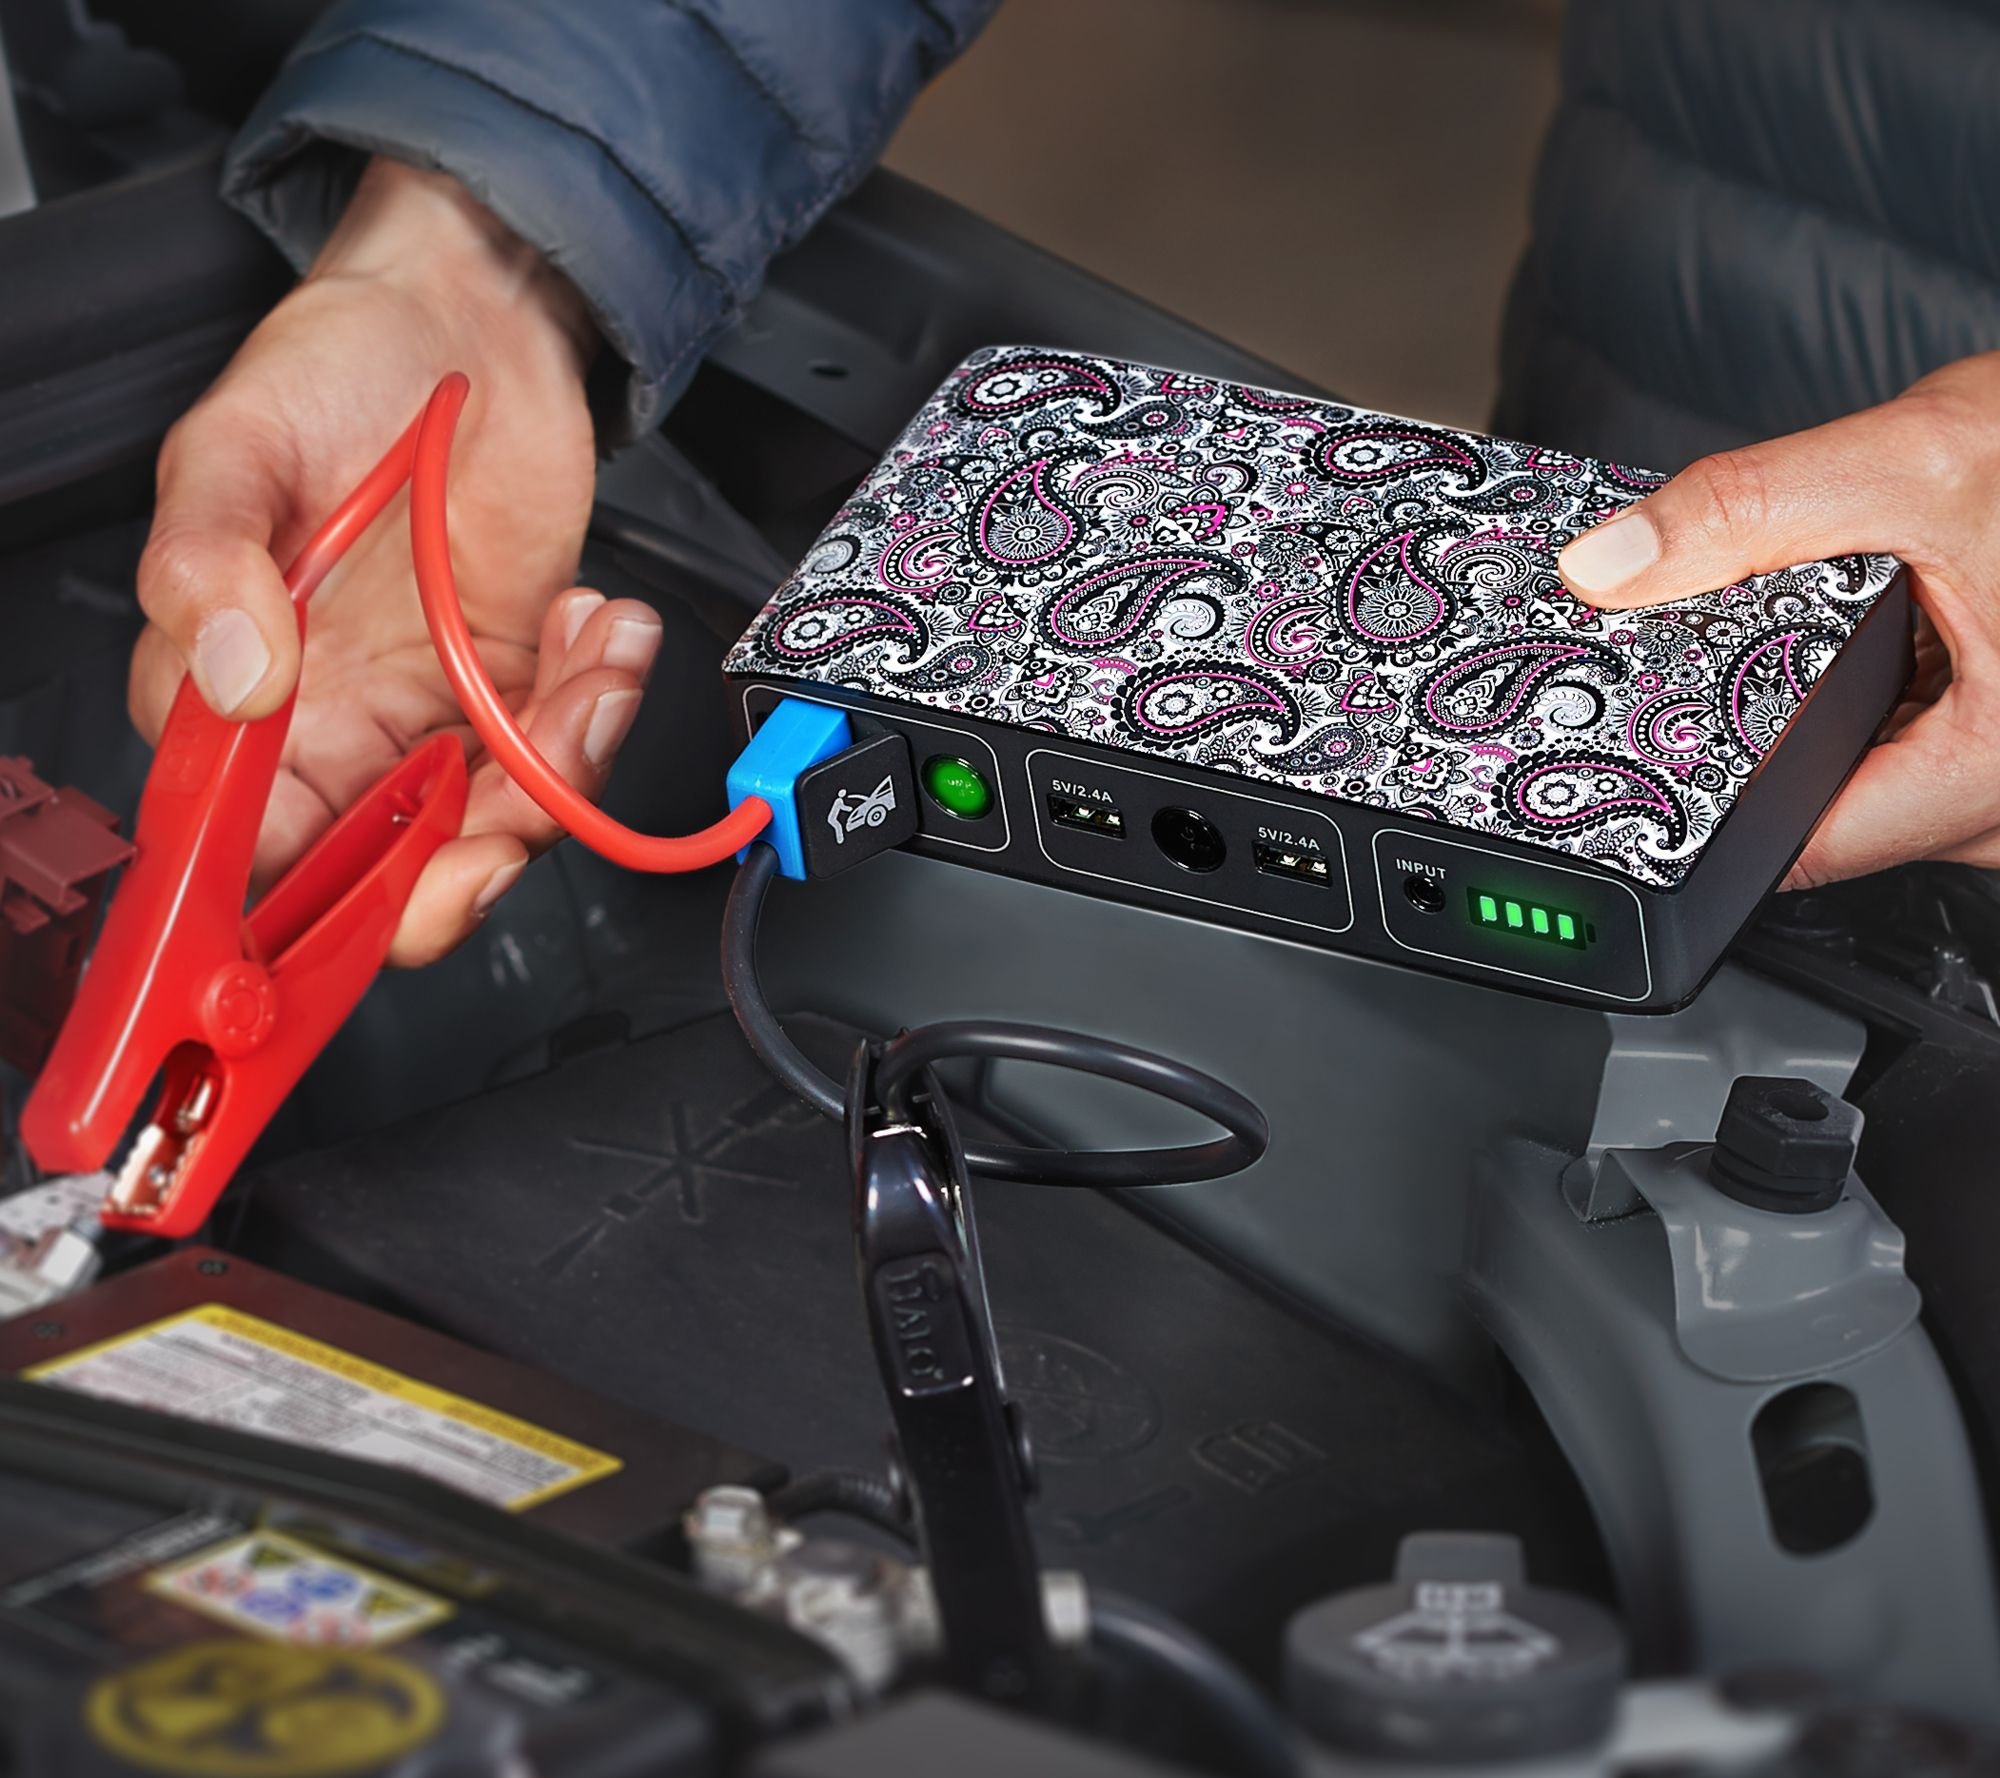 Halo bolt portable charger car jump starter w led floodlight page 1 qvc com